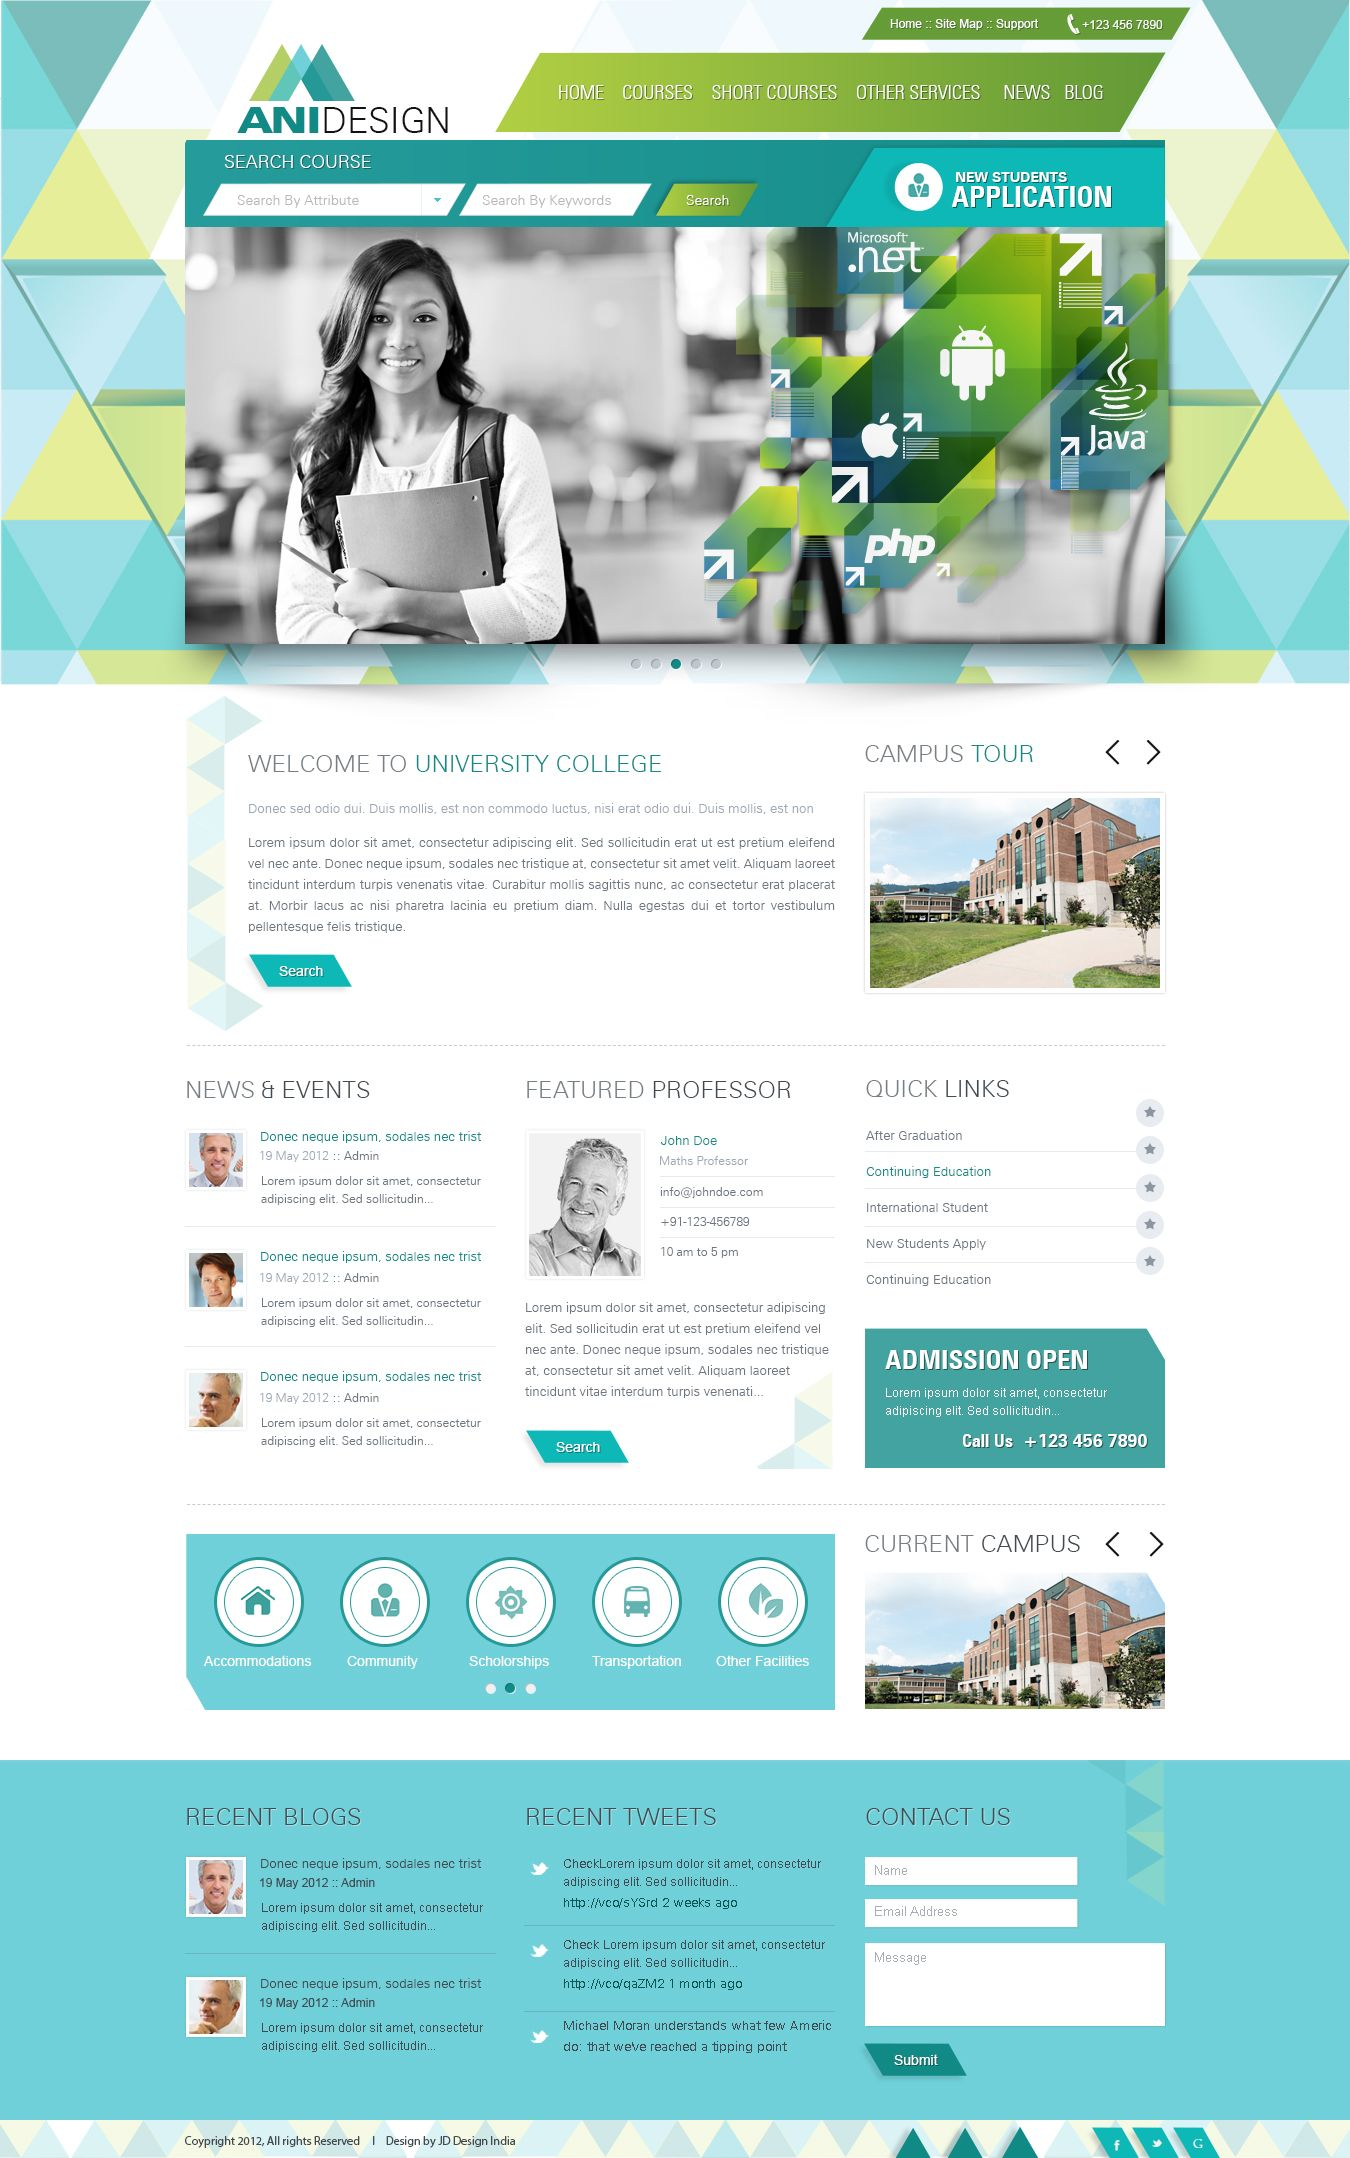 Cmnewmedia Is A Montreal Web Design Company That Offers Affordable Website Design Services Top Quality Fast Delivery 100 Money Back Guarantee Cmnewmedia Com Simple Web Design Web Design Tips Web Design